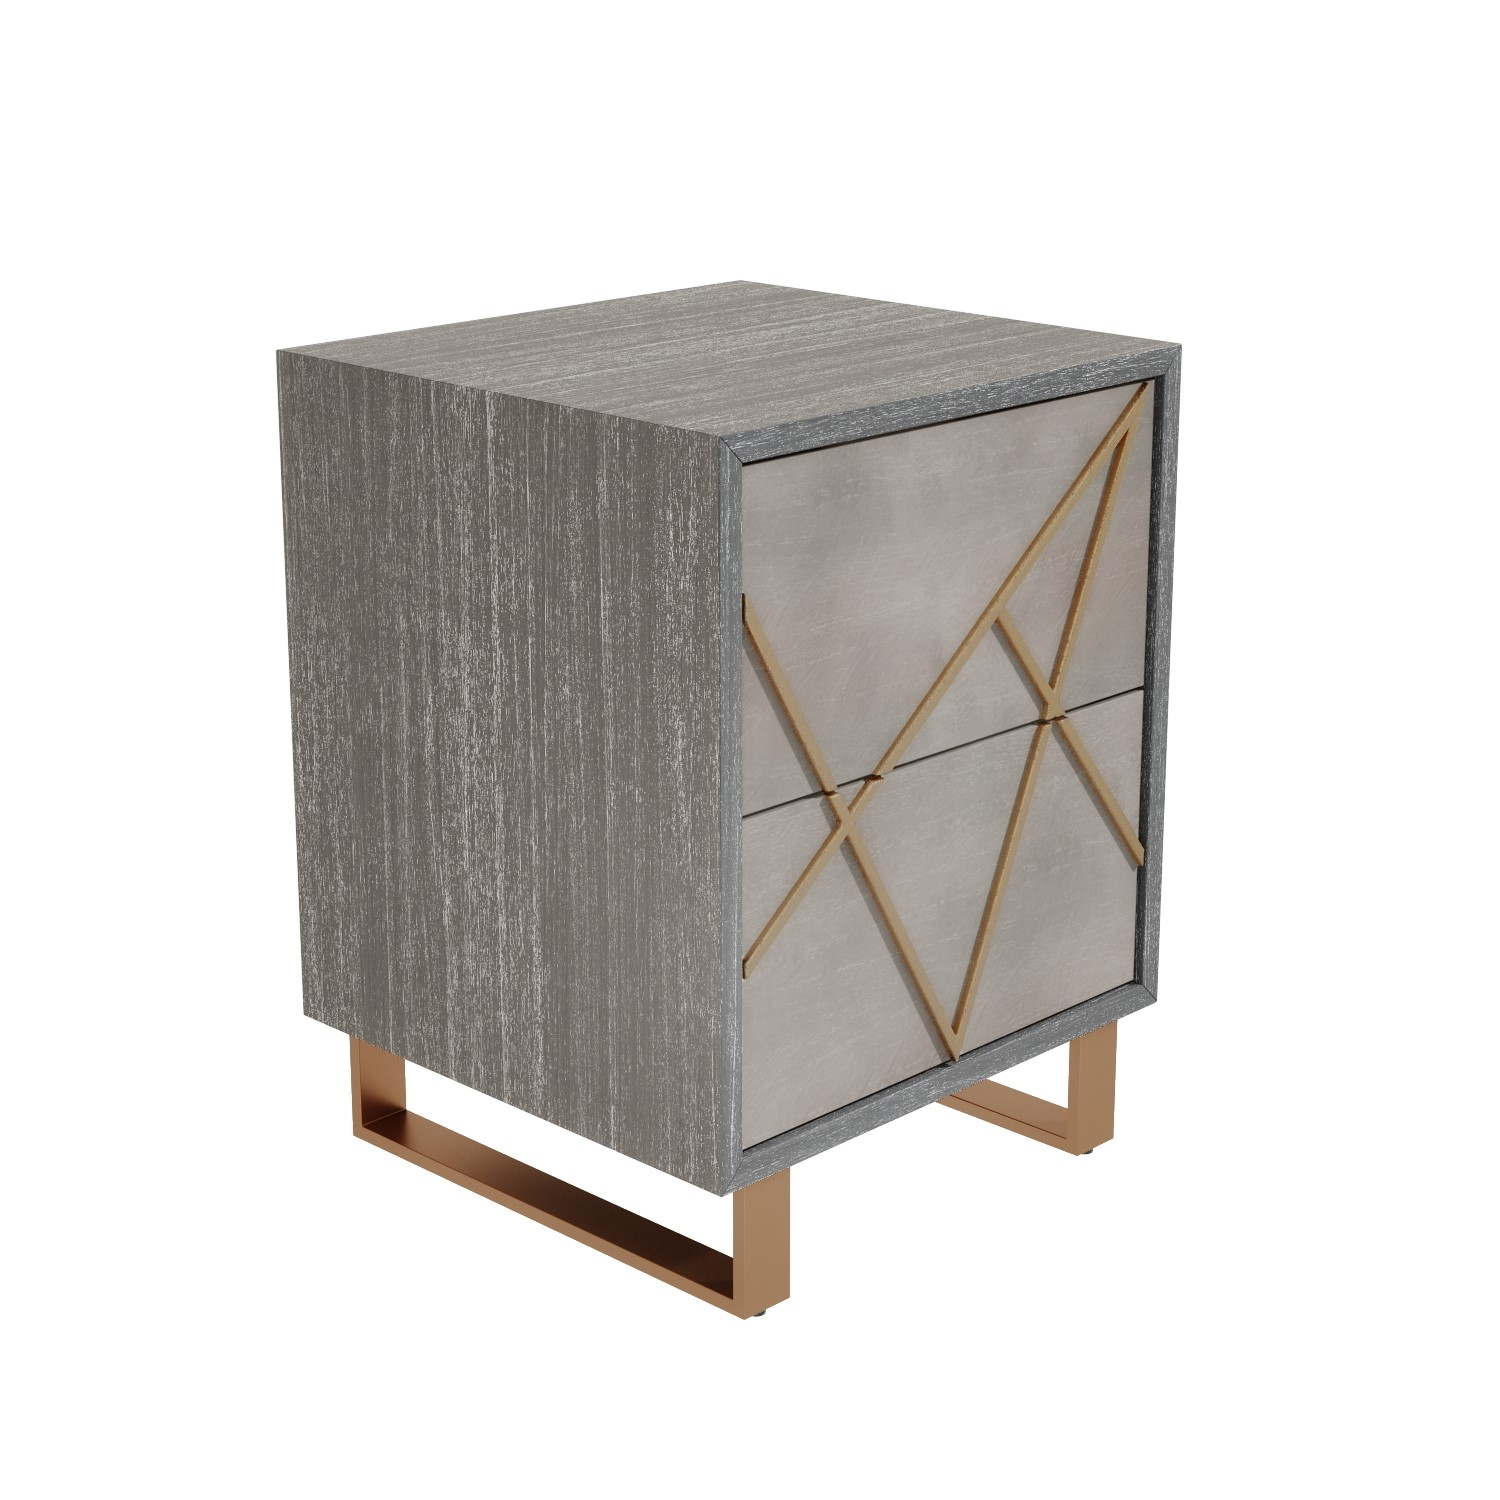 Anastasia 2 Drawer Bedside Table In Taupe With Gold Painted Wooden Trim Furniture123